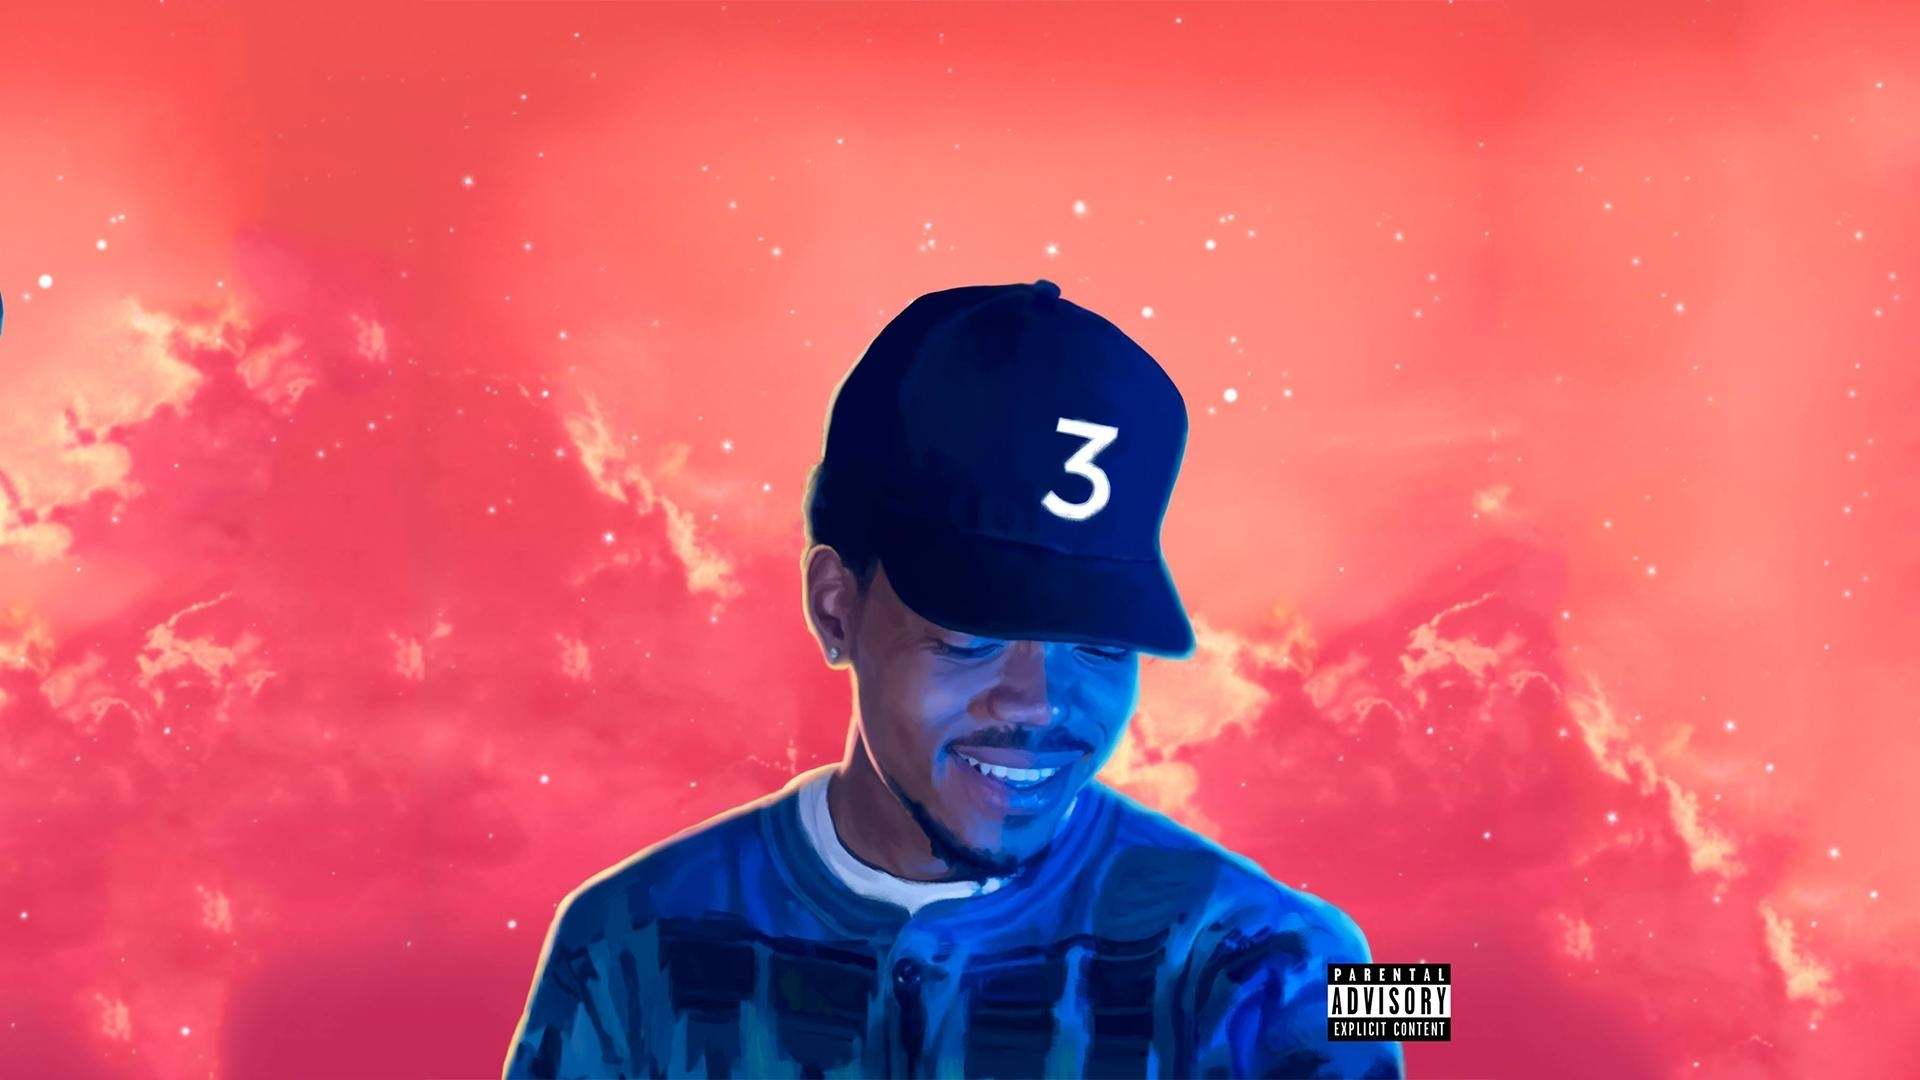 chance 3 wallpaper i made for myself (1920x1080) need #iphone #6s